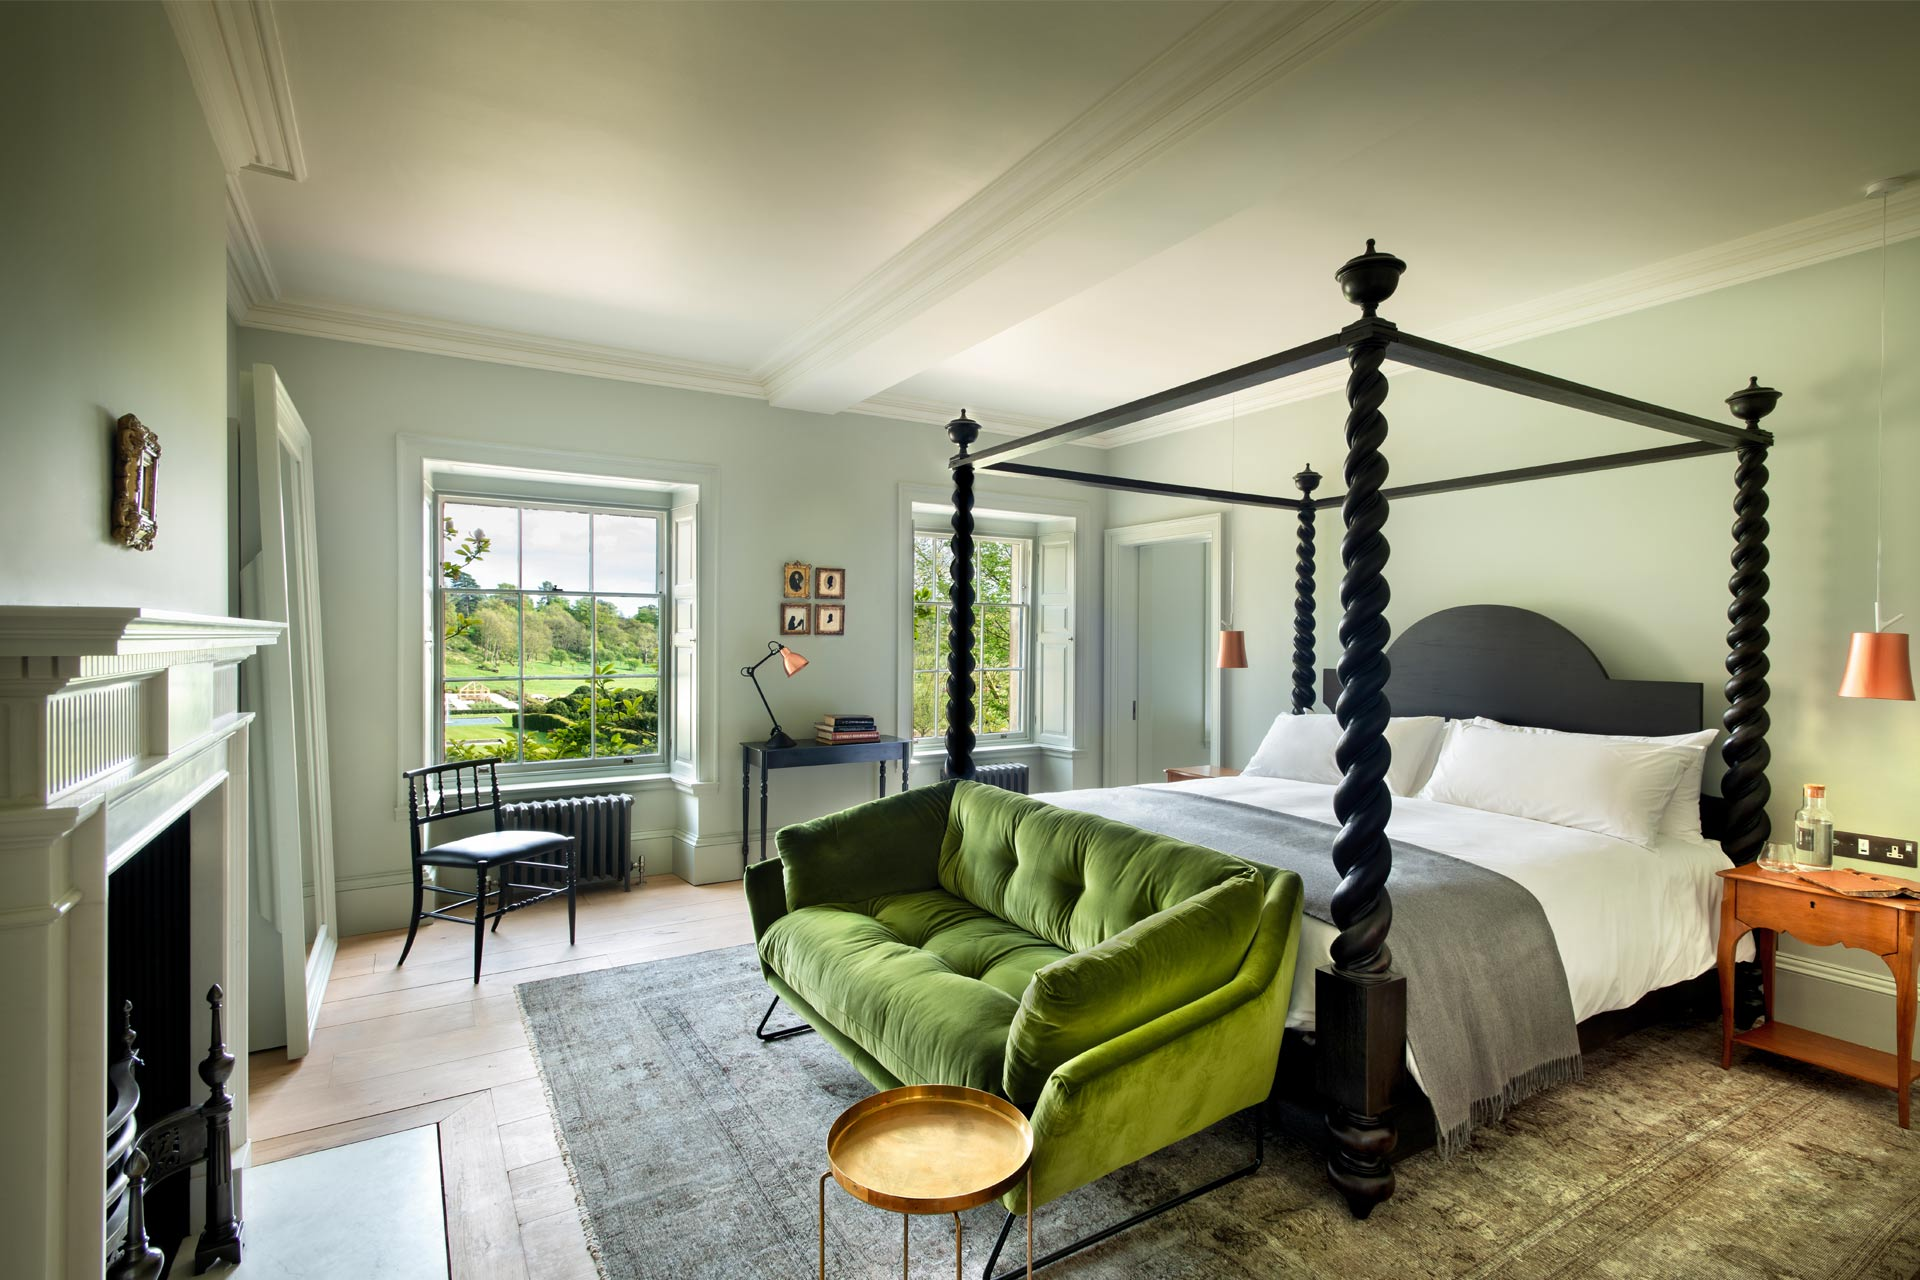 The Garden View Room at The Newt in Somerset, England